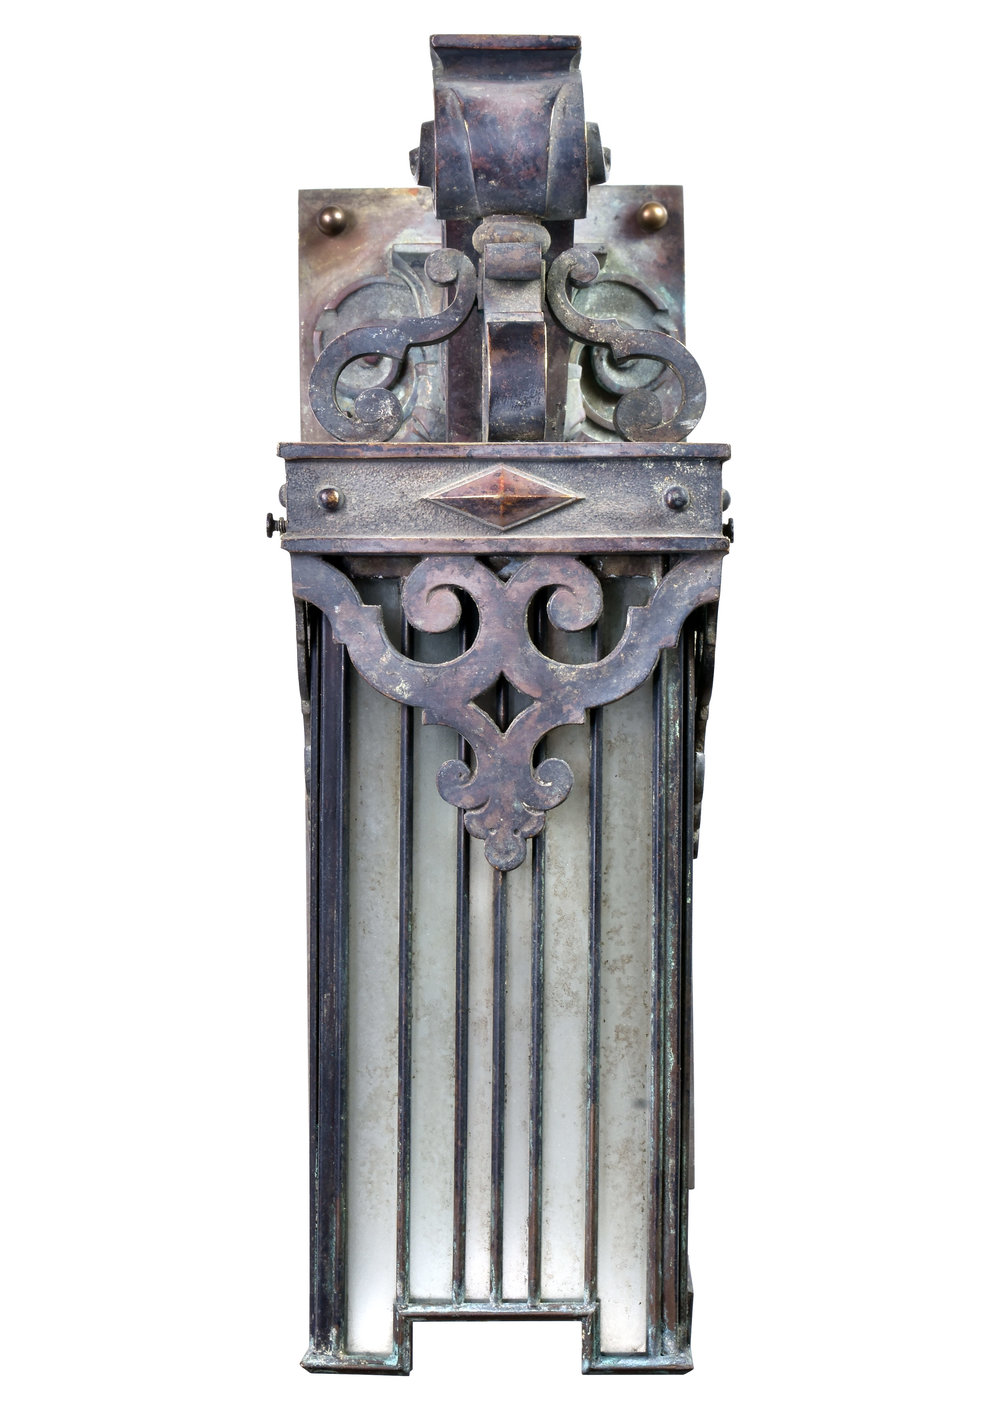 47236-cast-bronze-sconce-with-lead-shade.jpg